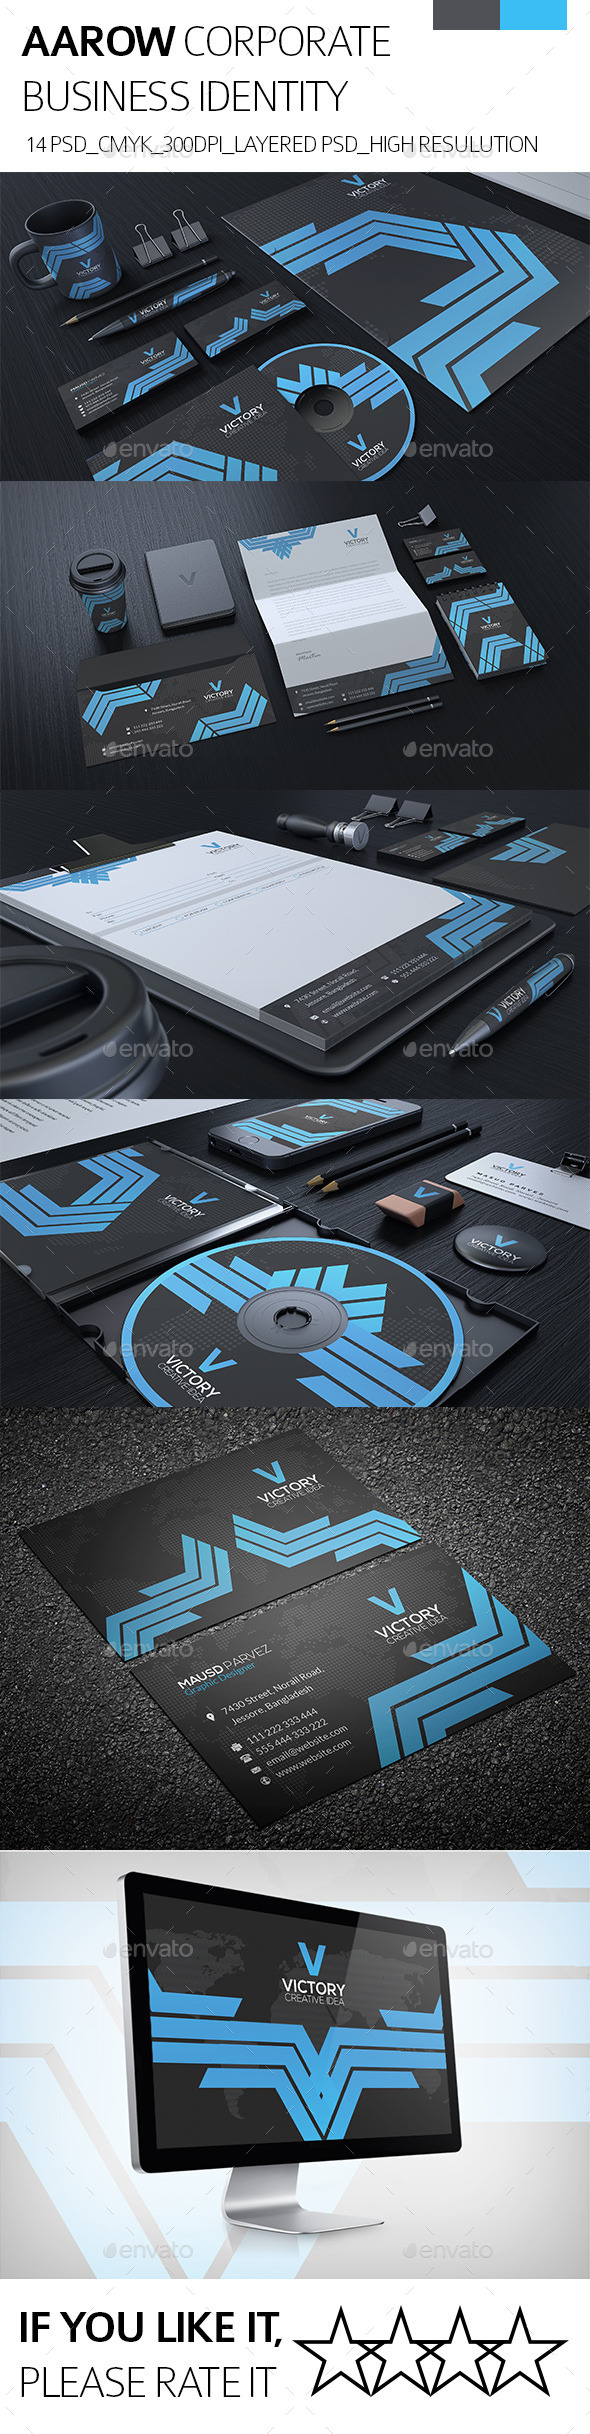 AAROW CORPORATE IDENTITY - Stationery Print Templates